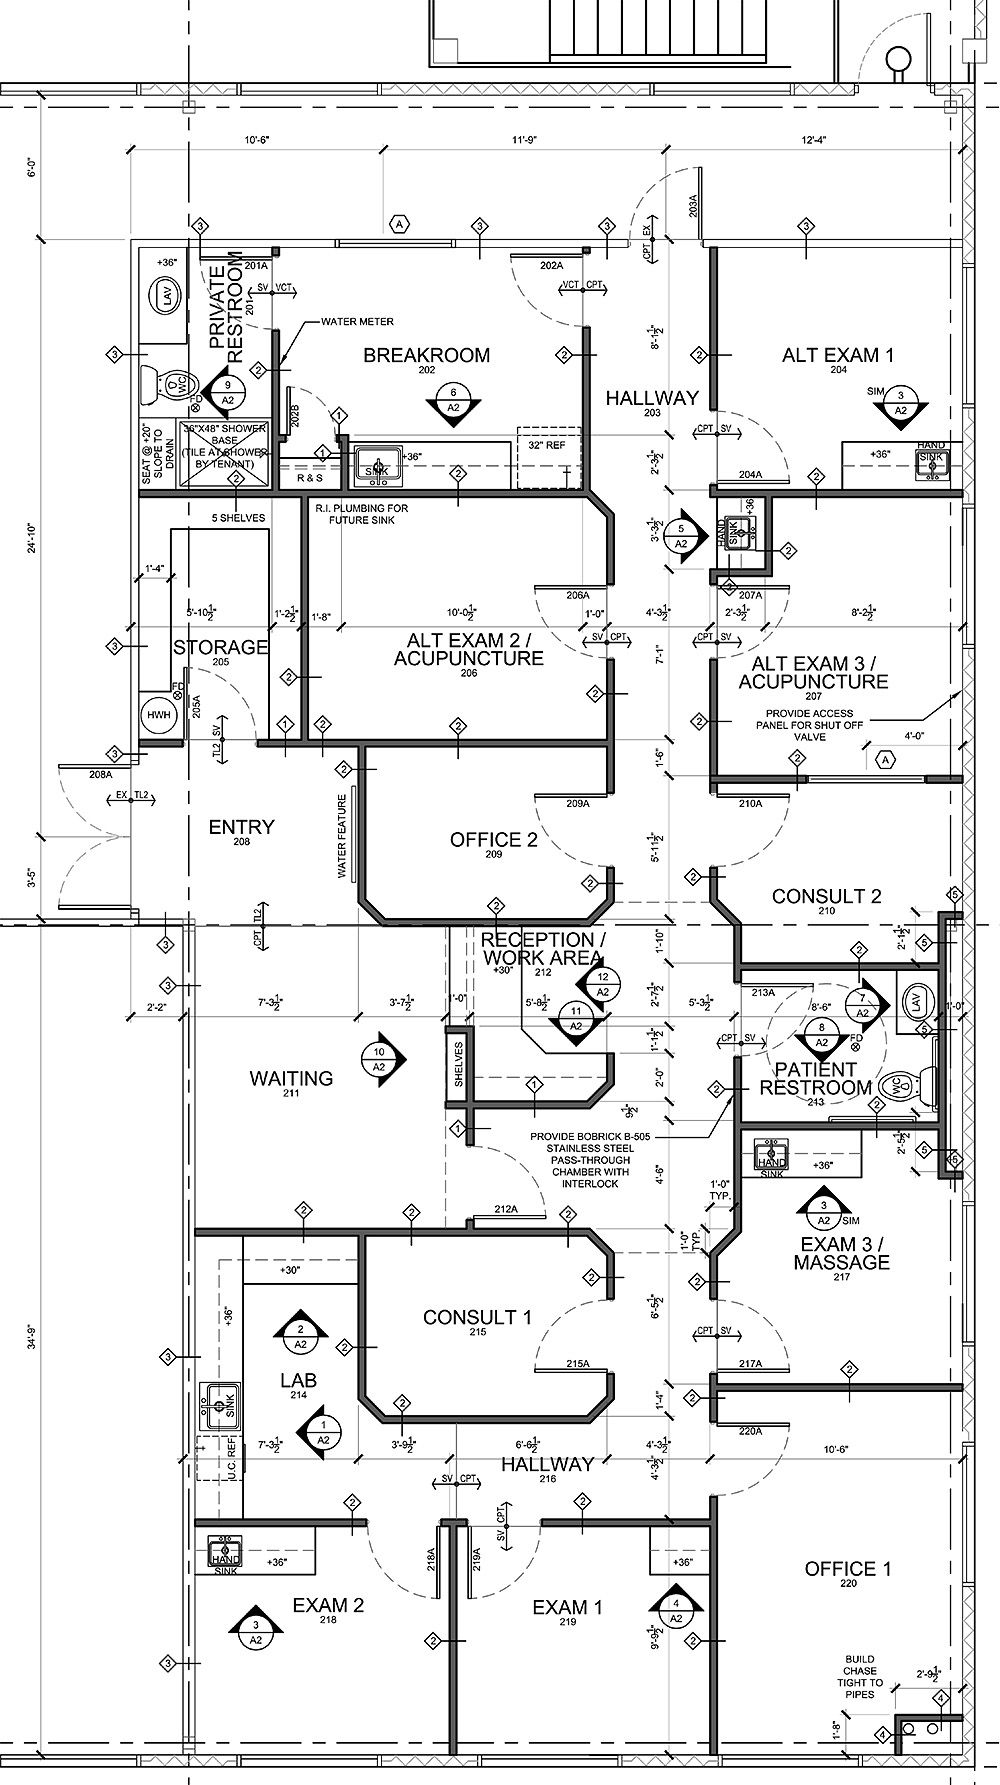 Medical office design plans advice for medical office for Office plan design